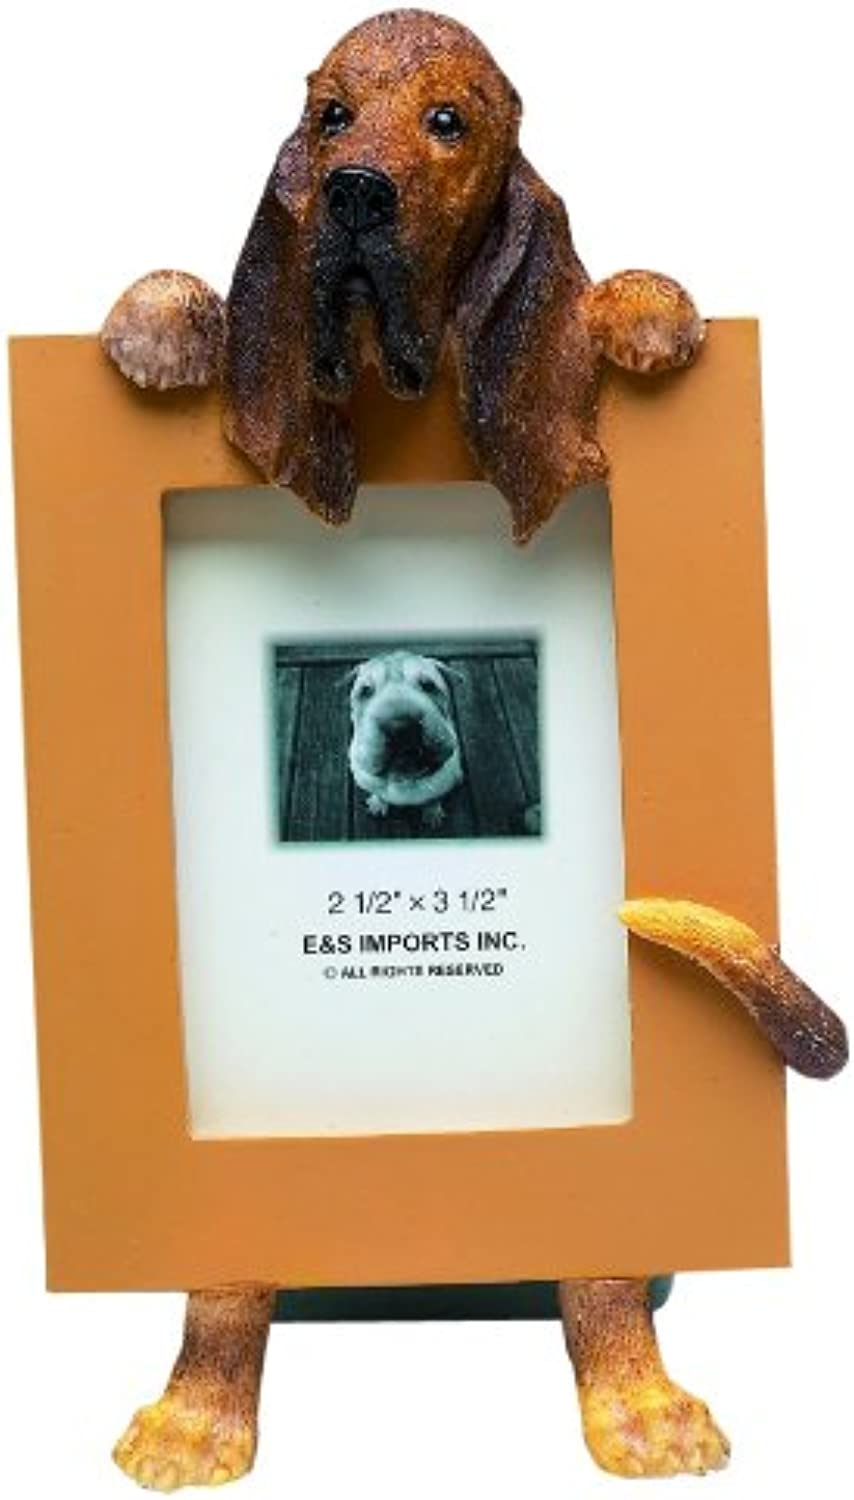 Bloodhound Picture Frame Holds Your Favorite 2.5 by 3.5 Inch Photo, Hand Painted Realistic Looking Bloodhound Stands 6 Inches Tall Holding Beautifully Crafted Frame, Unique and Special Bloodhound Gifts for Bloodhound Owners